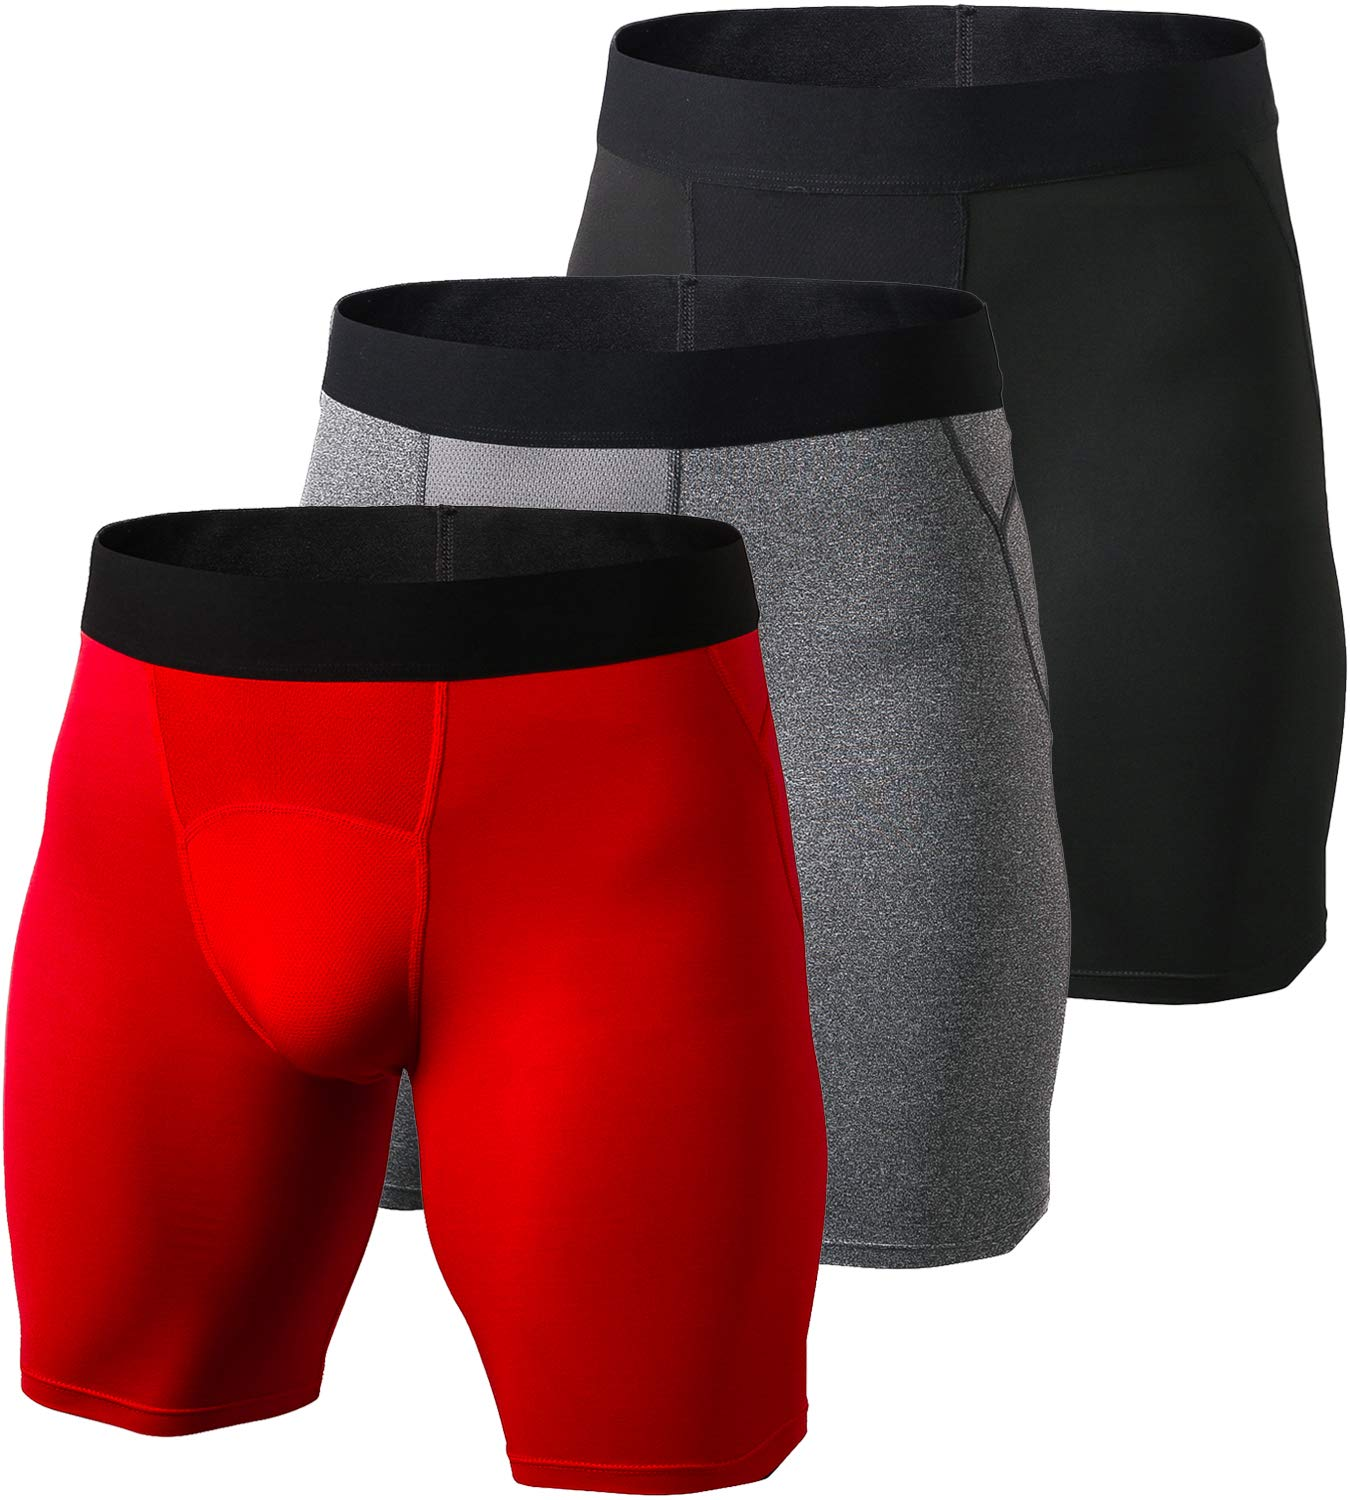 laventoメンズ圧縮ショートBaselayer Boxer Briefクールドライスポーツタイツ B07588ZTVN X-Large|3 Pack-1044 Black/Gray/Red 3 Pack-1044 Black/Gray/Red X-Large